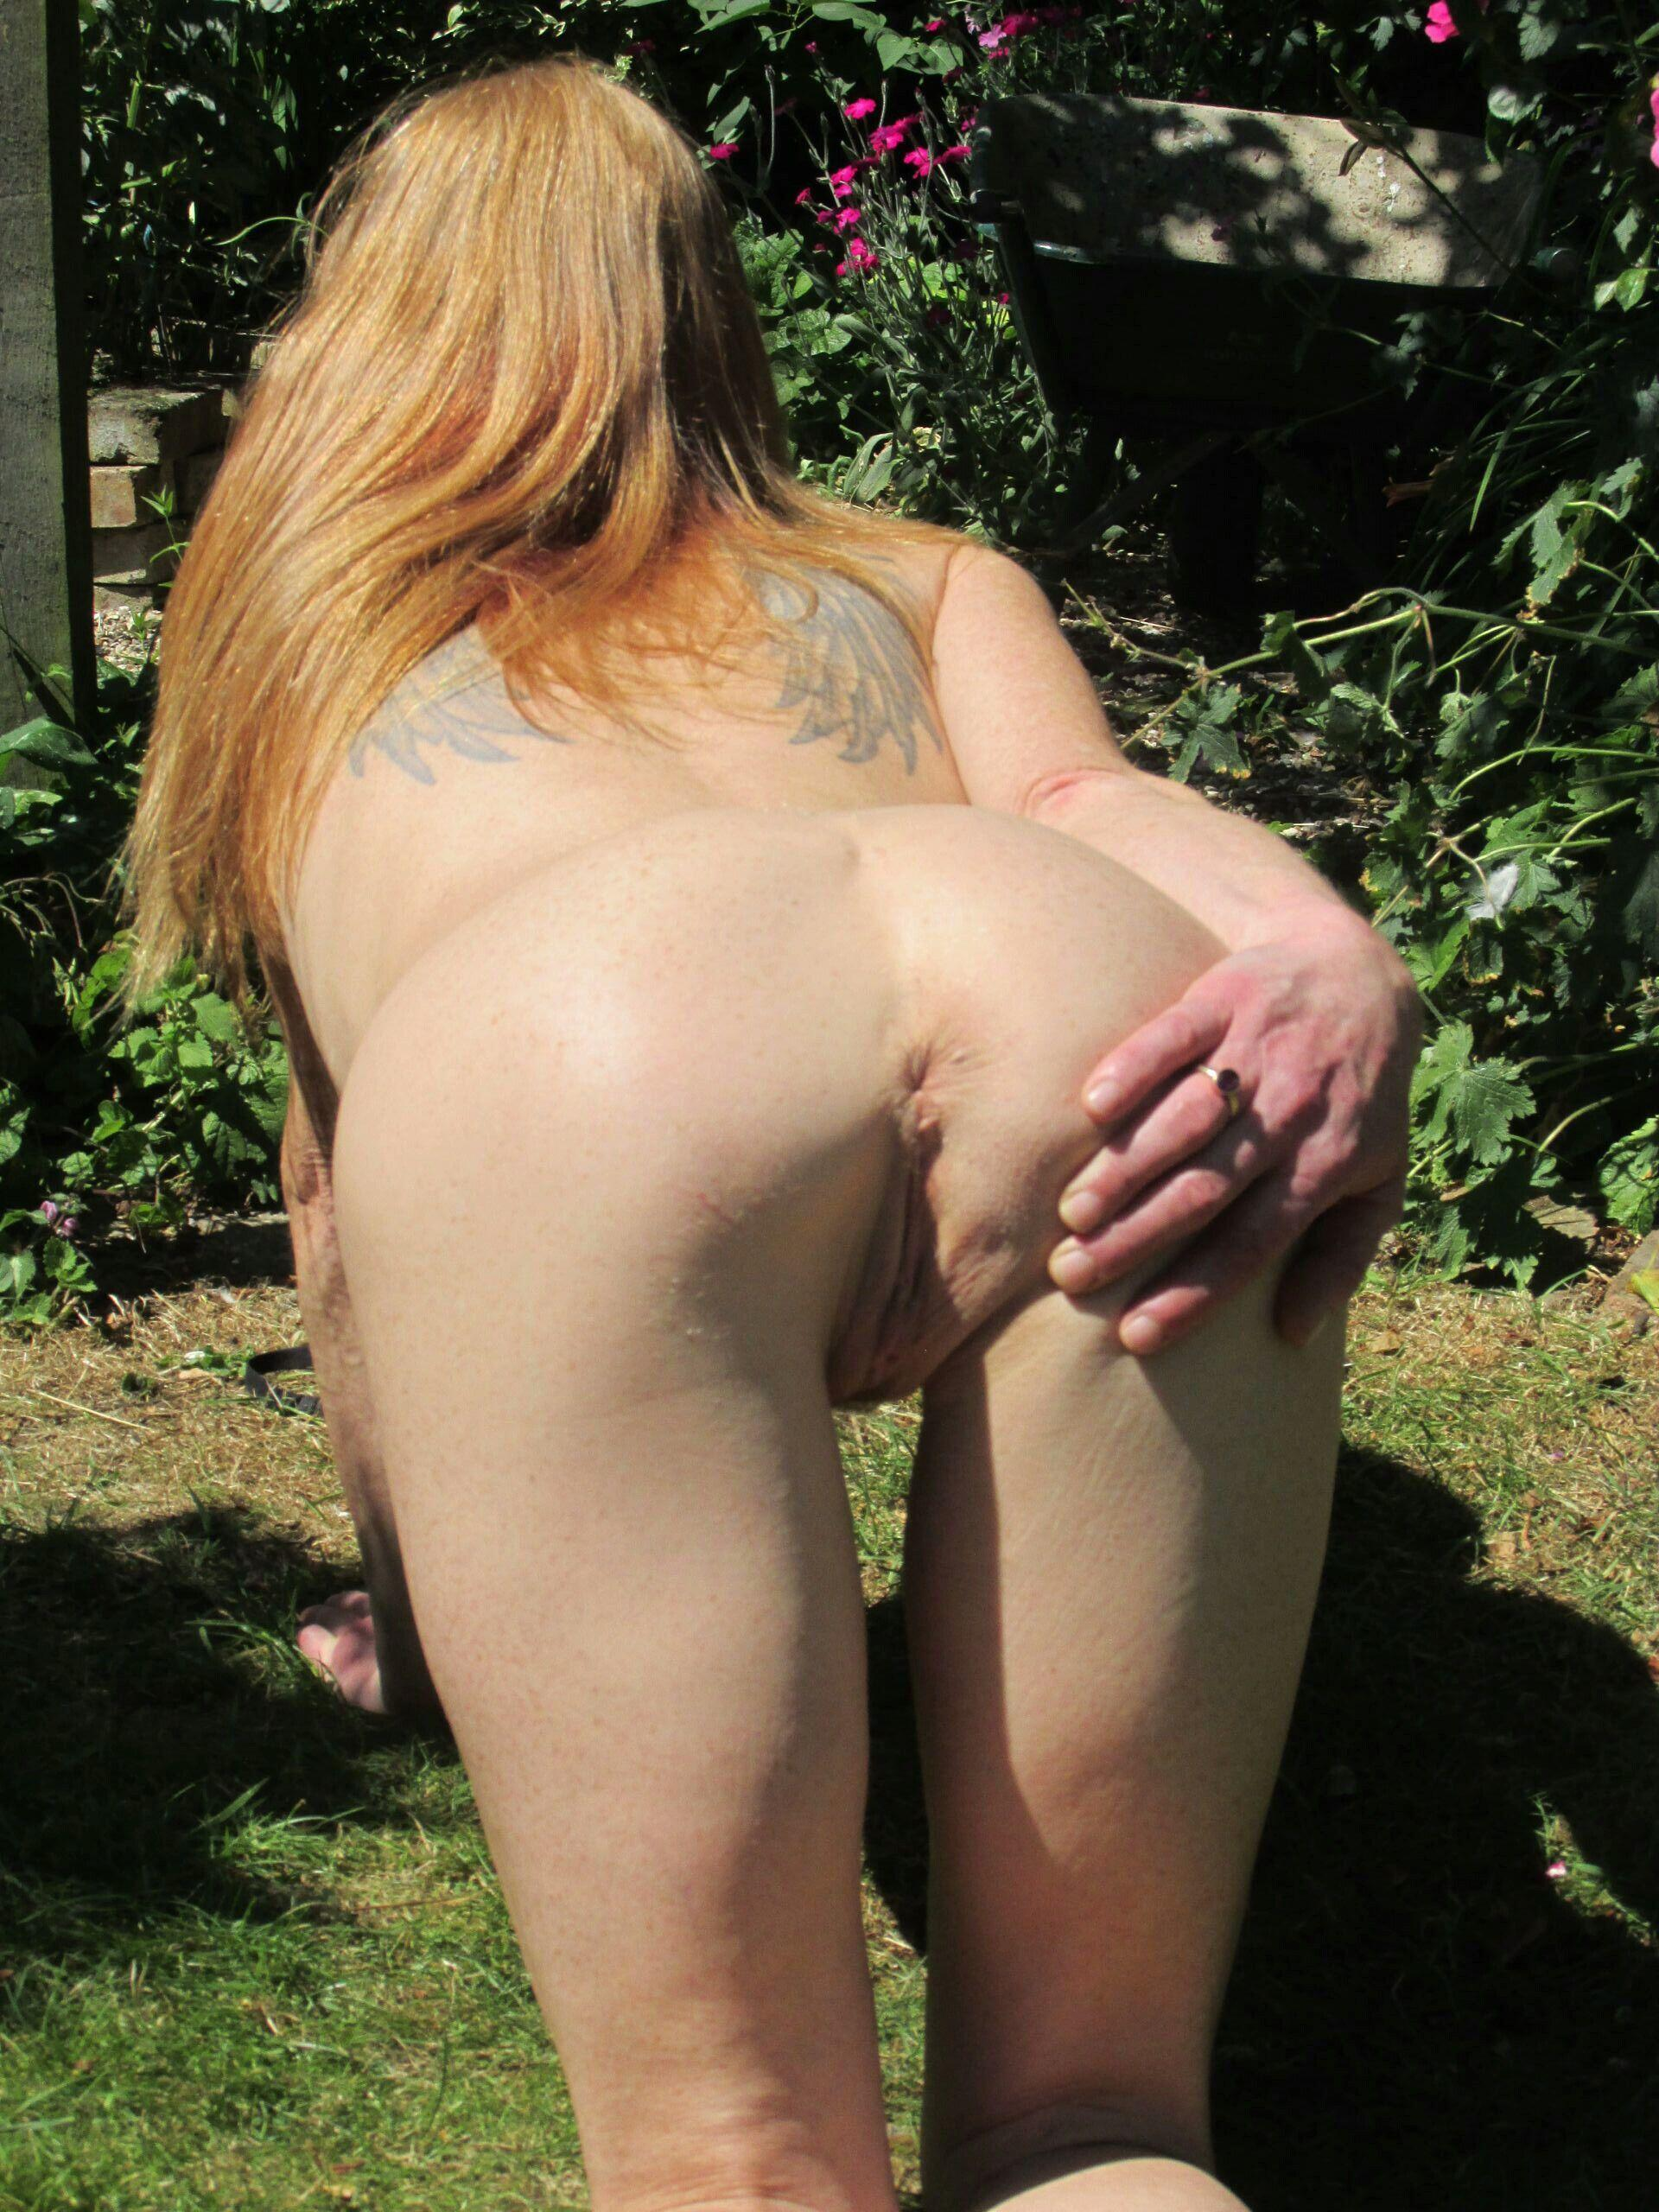 Redheaded mature slut told to open! real nudity public flashing no panties mature howife ass flash